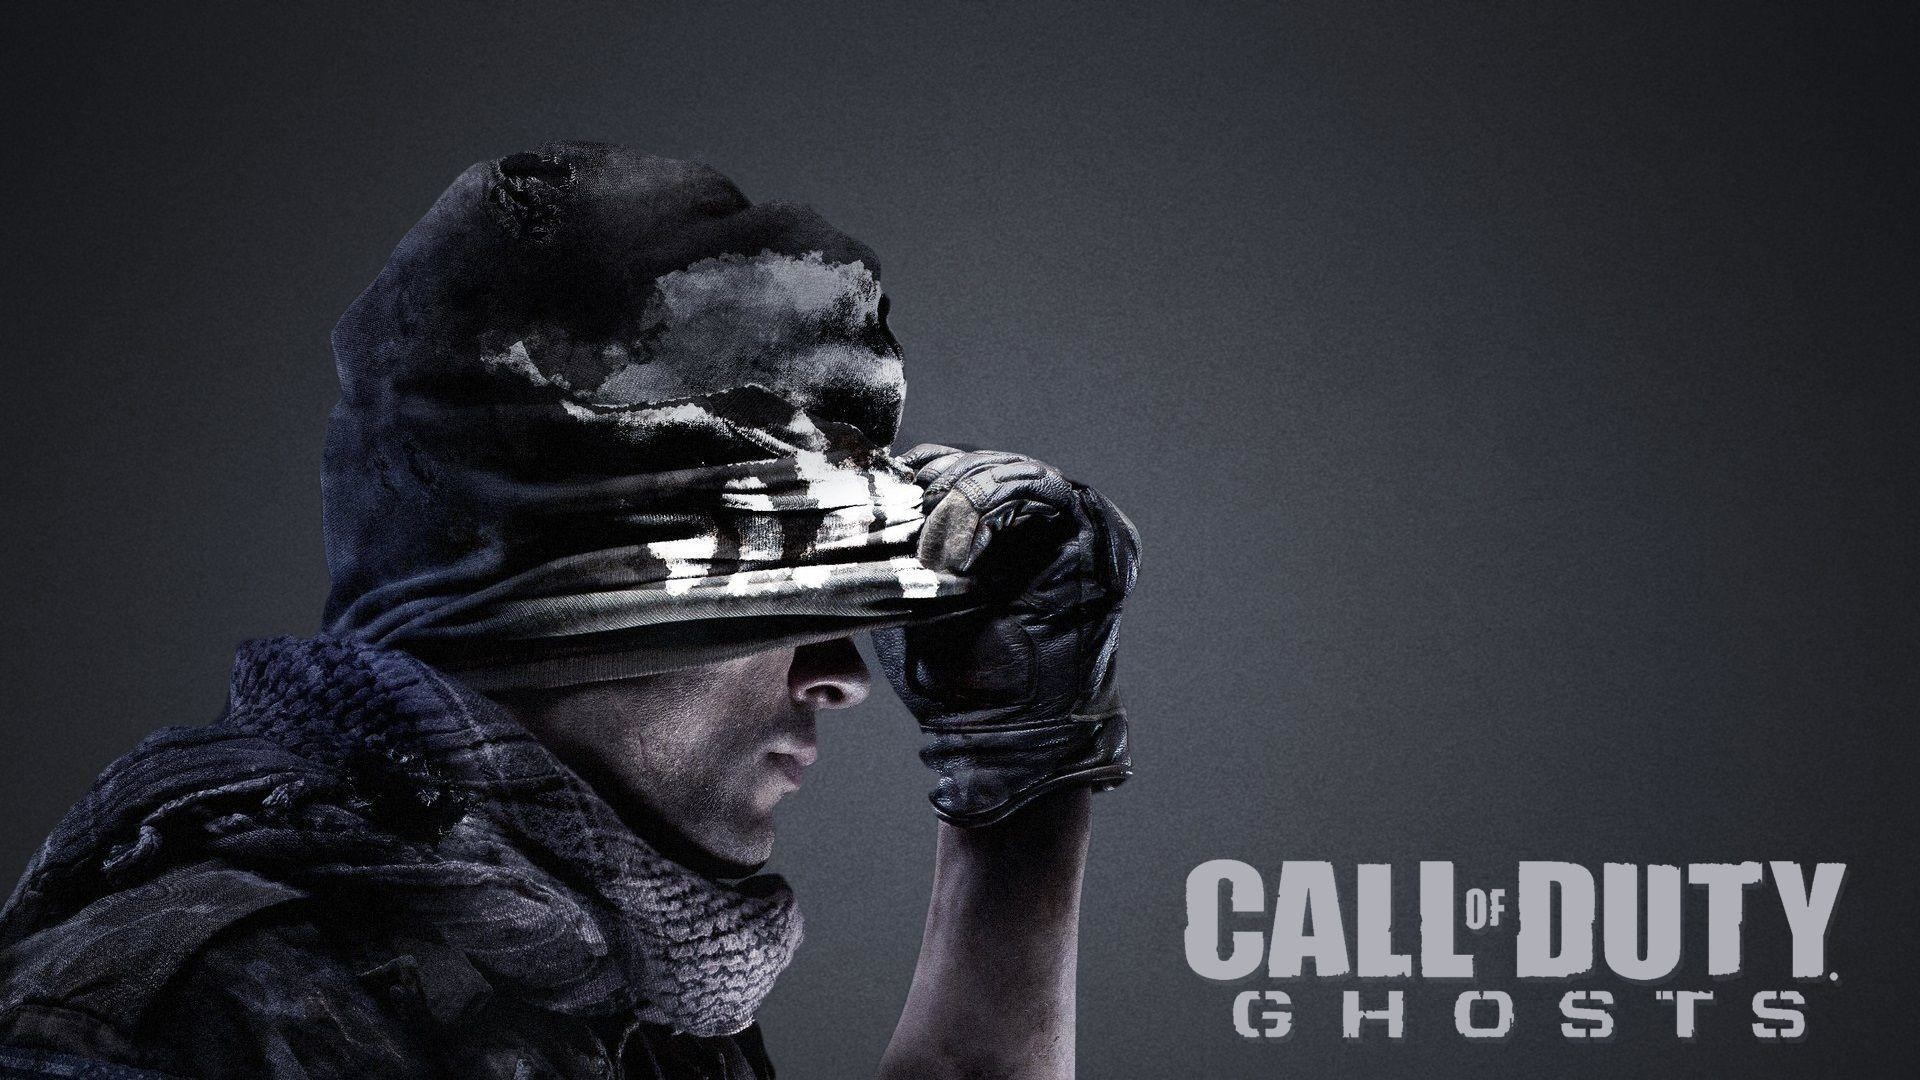 Call Of Duty Ghosts 1080p #101 Wallpaper | All Best Image Collection